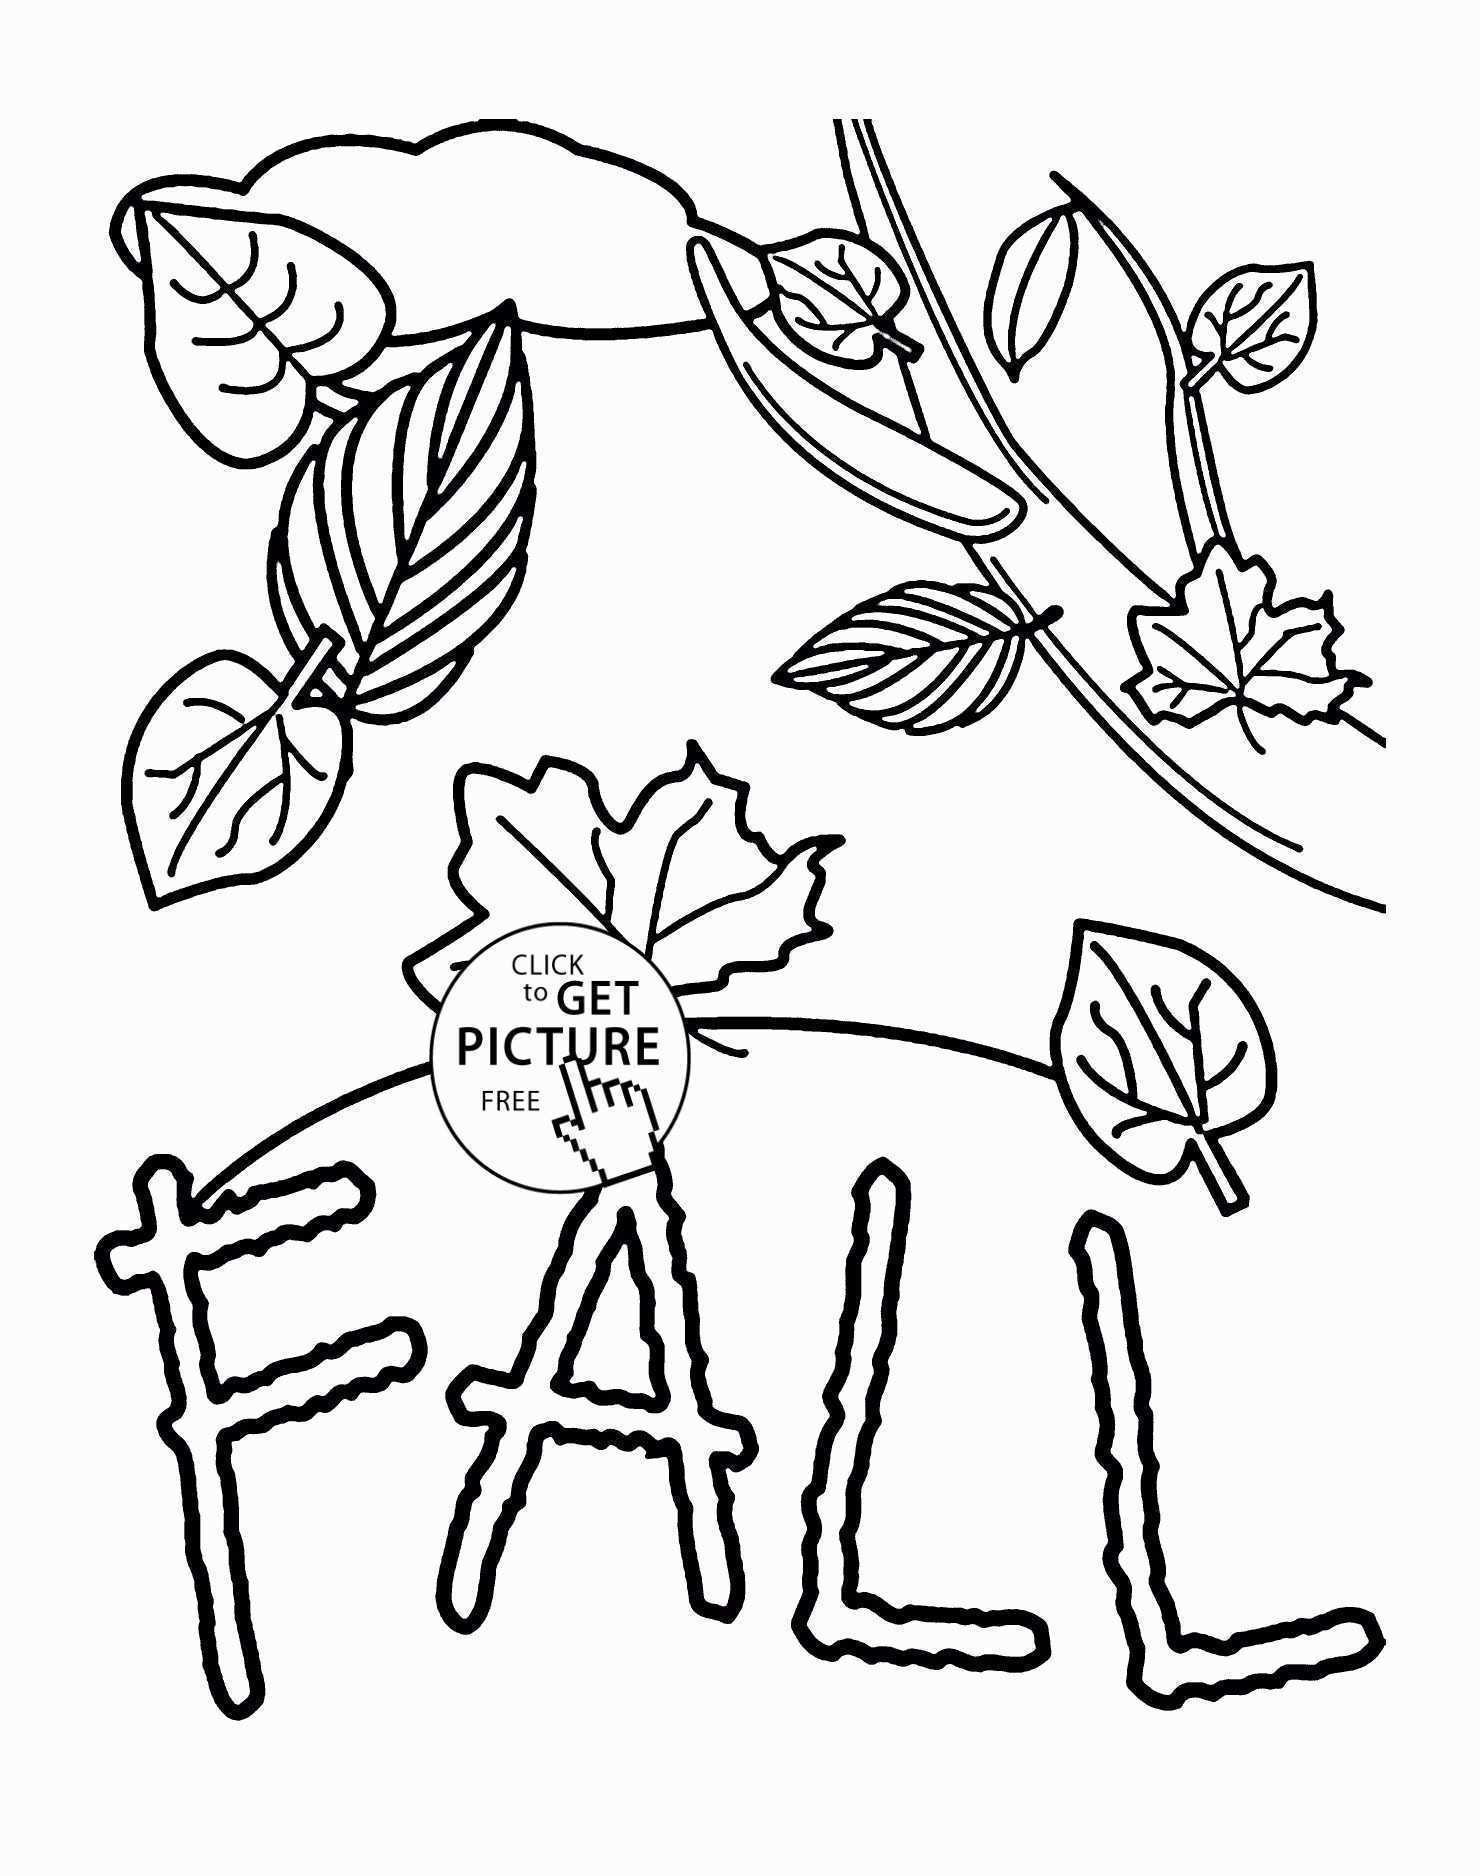 Fairy to Print Free New Fairy Coloring Pages Best I Pinimg